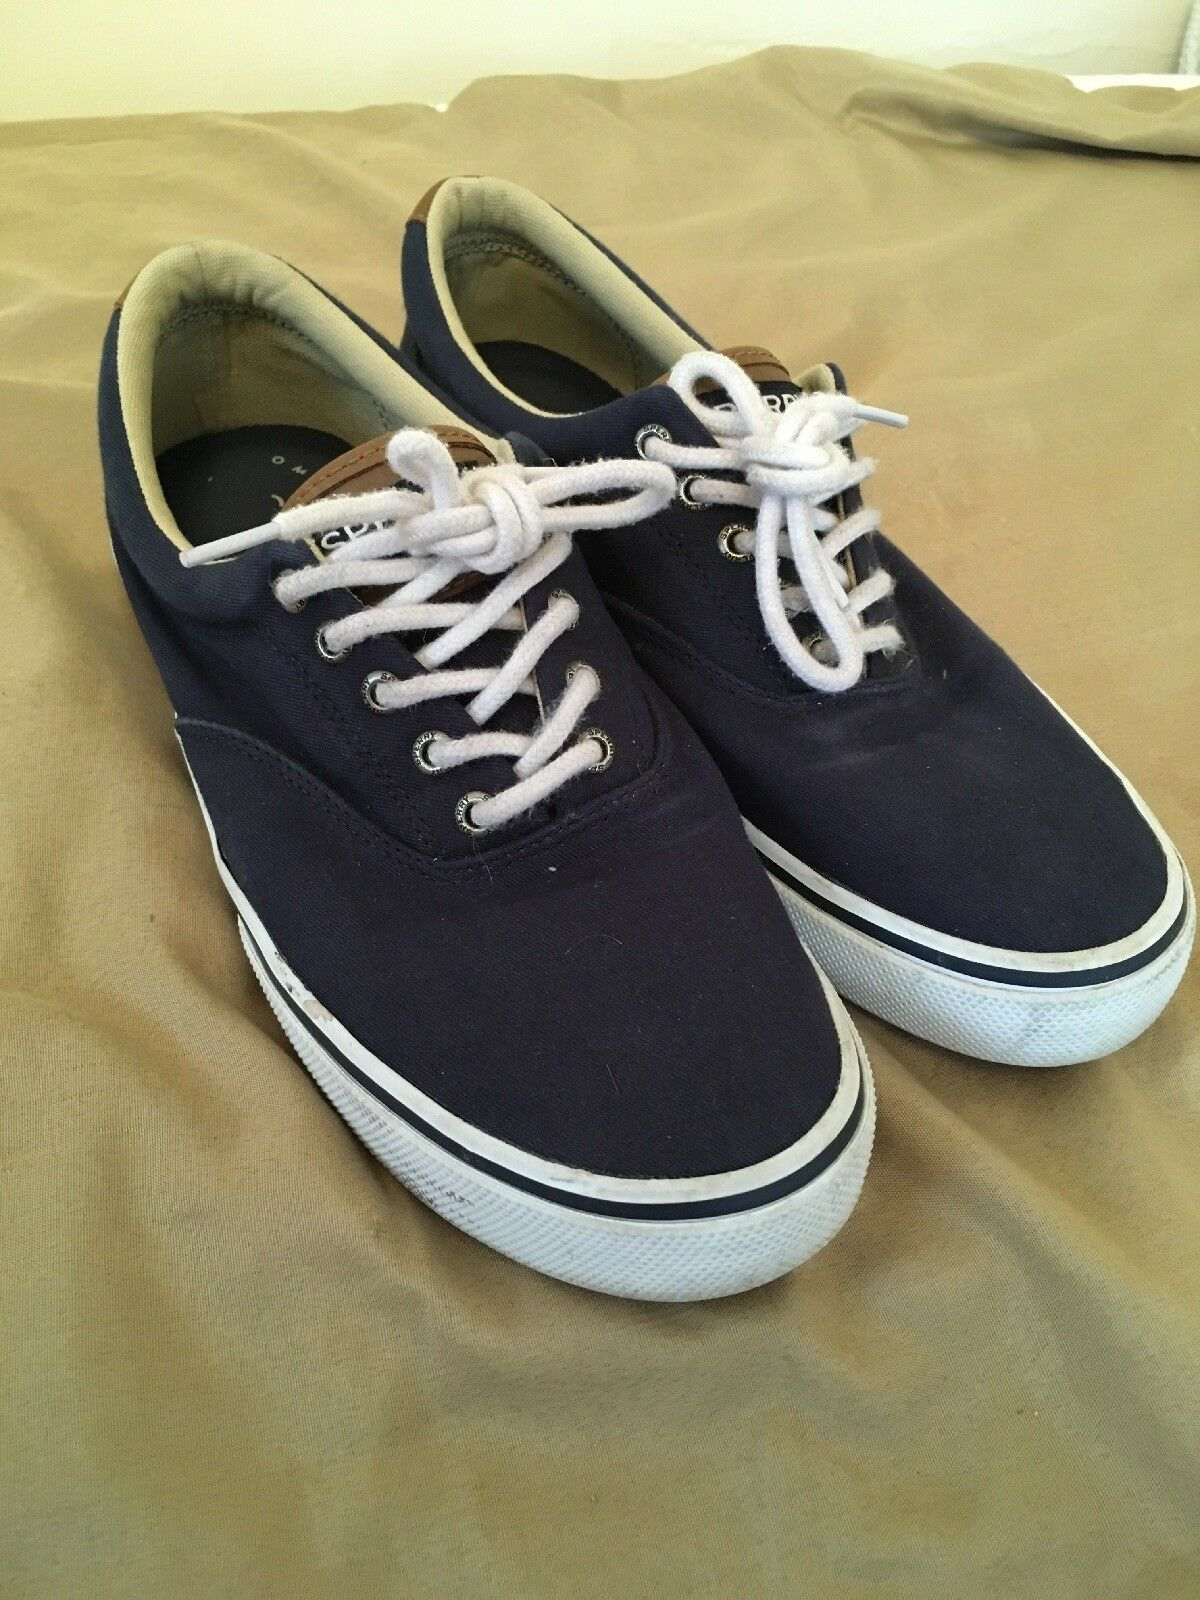 Sperry Nautical Canvas Boat shoes - Men's Size 8.5, Navy